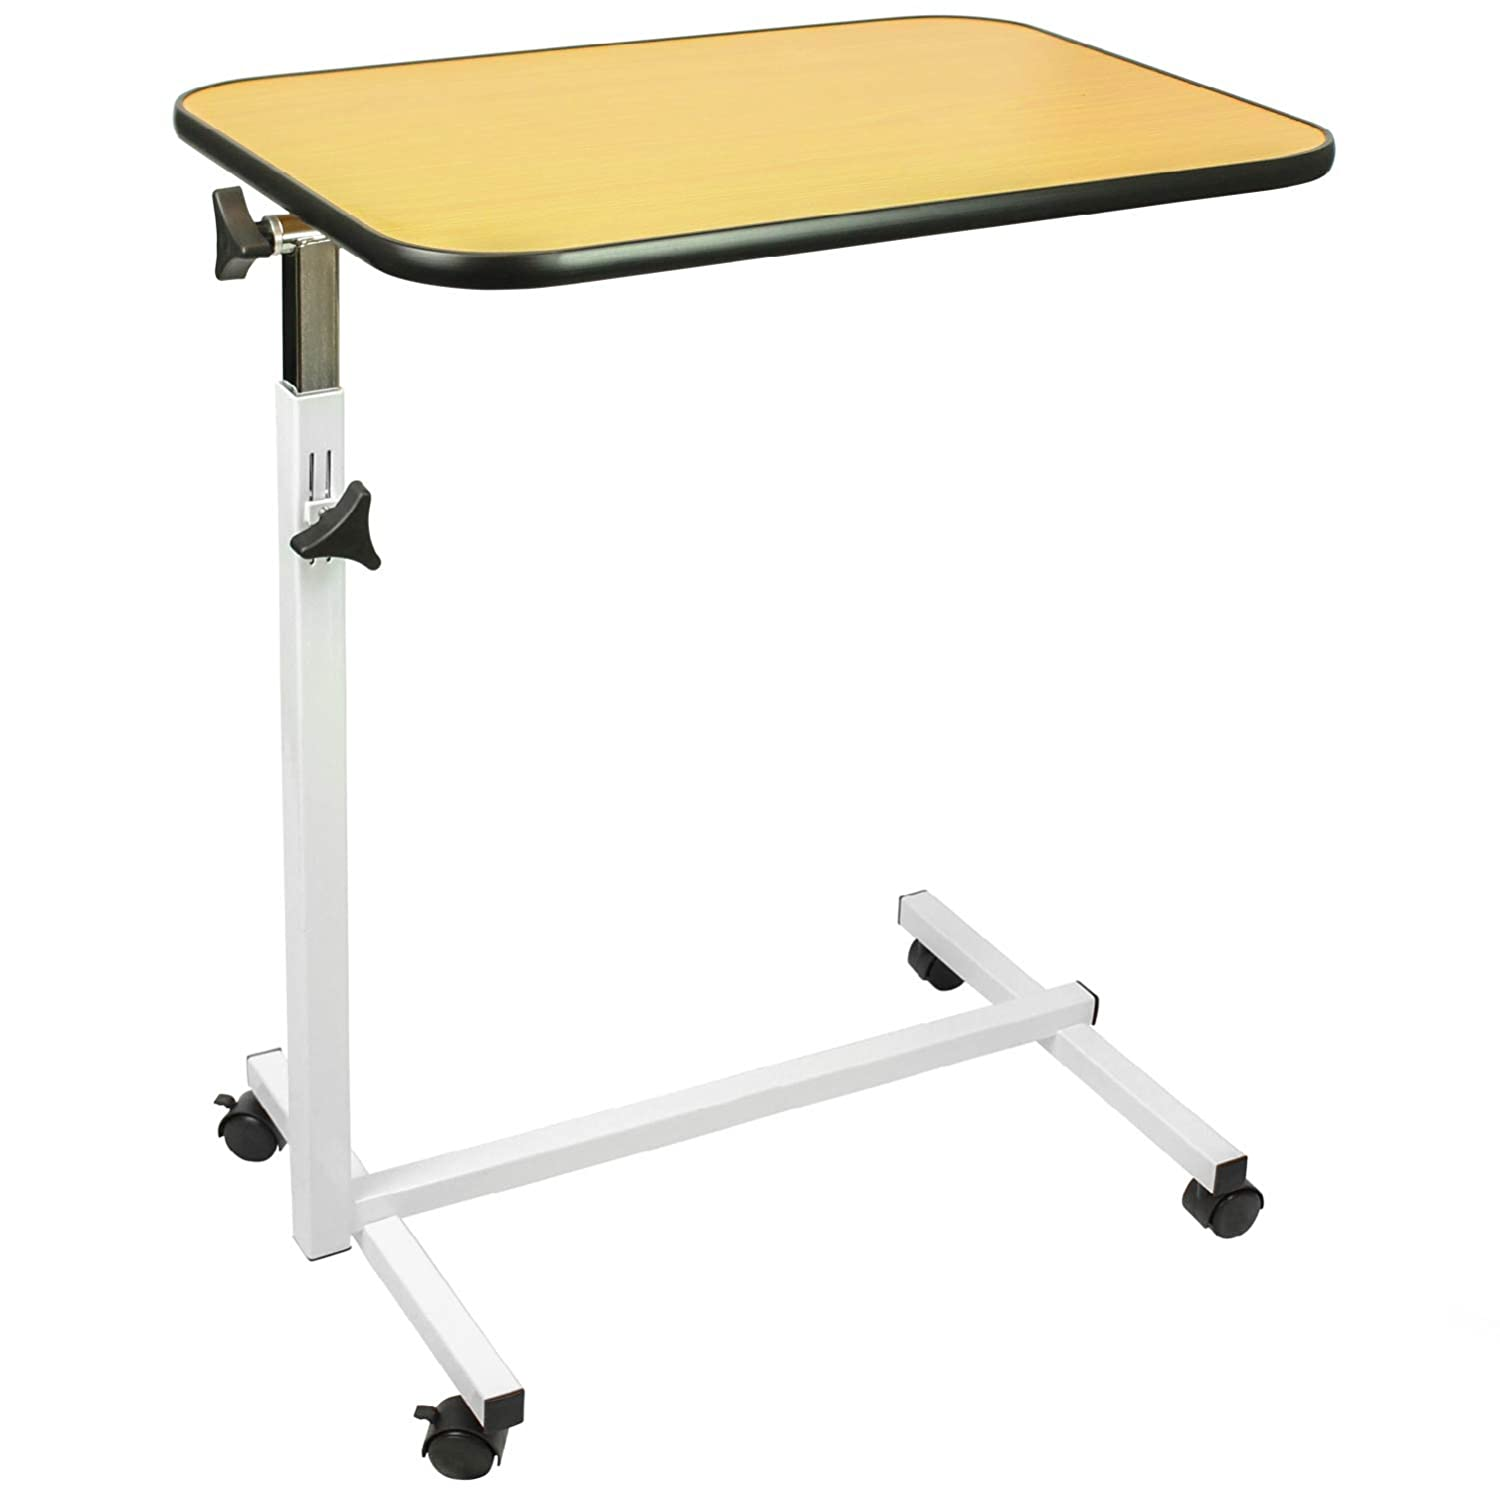 amazoncom overbed table by vive swivel tilt top rolling tray table adjustable bed table for home or hospital laptop reading u0026 breakfast cart for